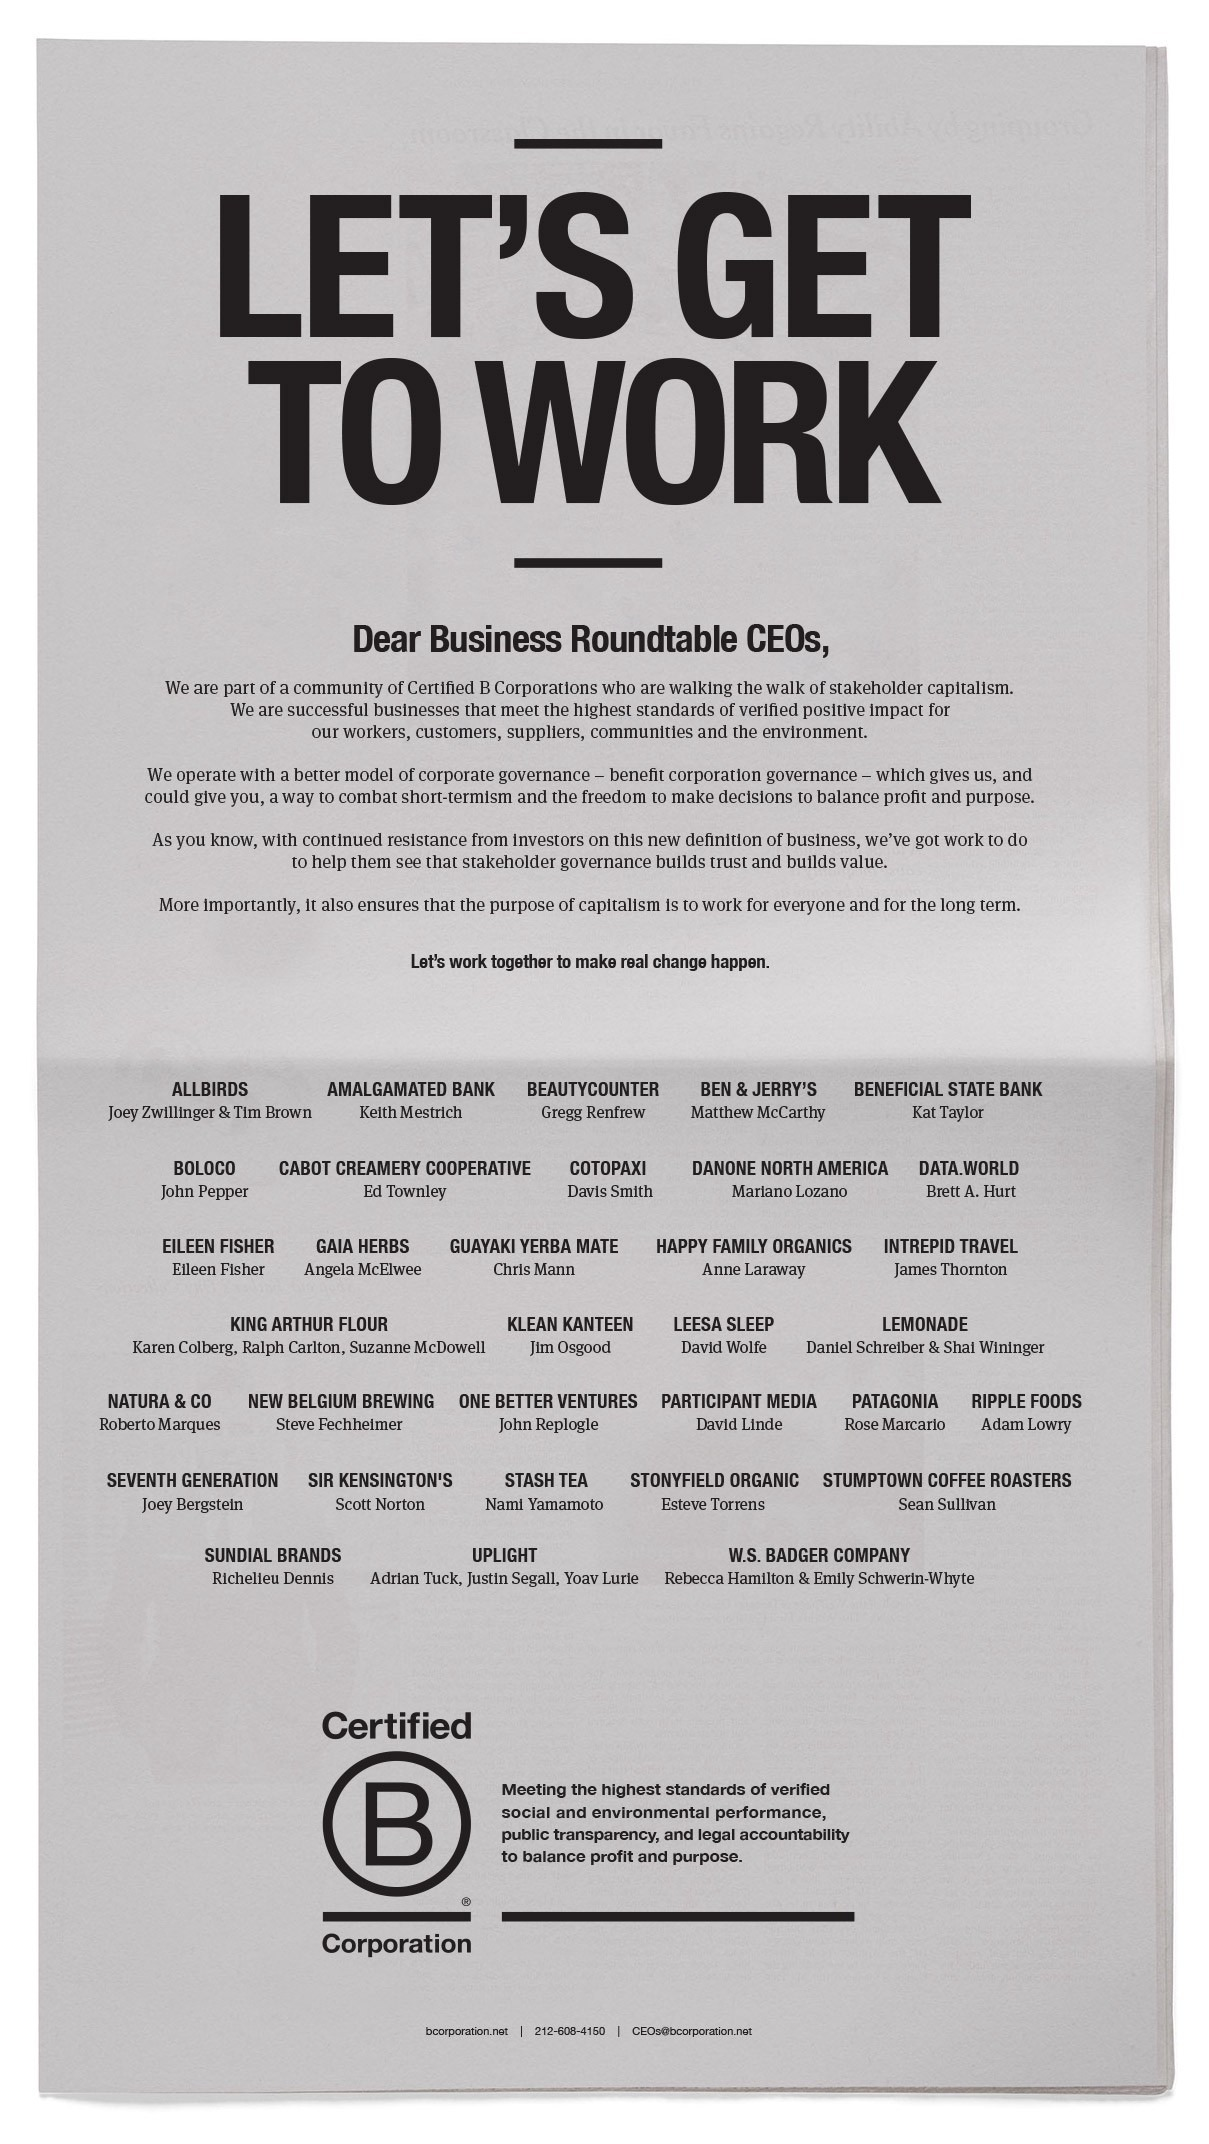 The full-page ad letter from B Corp chiefs to Business Roundtable CEOs.